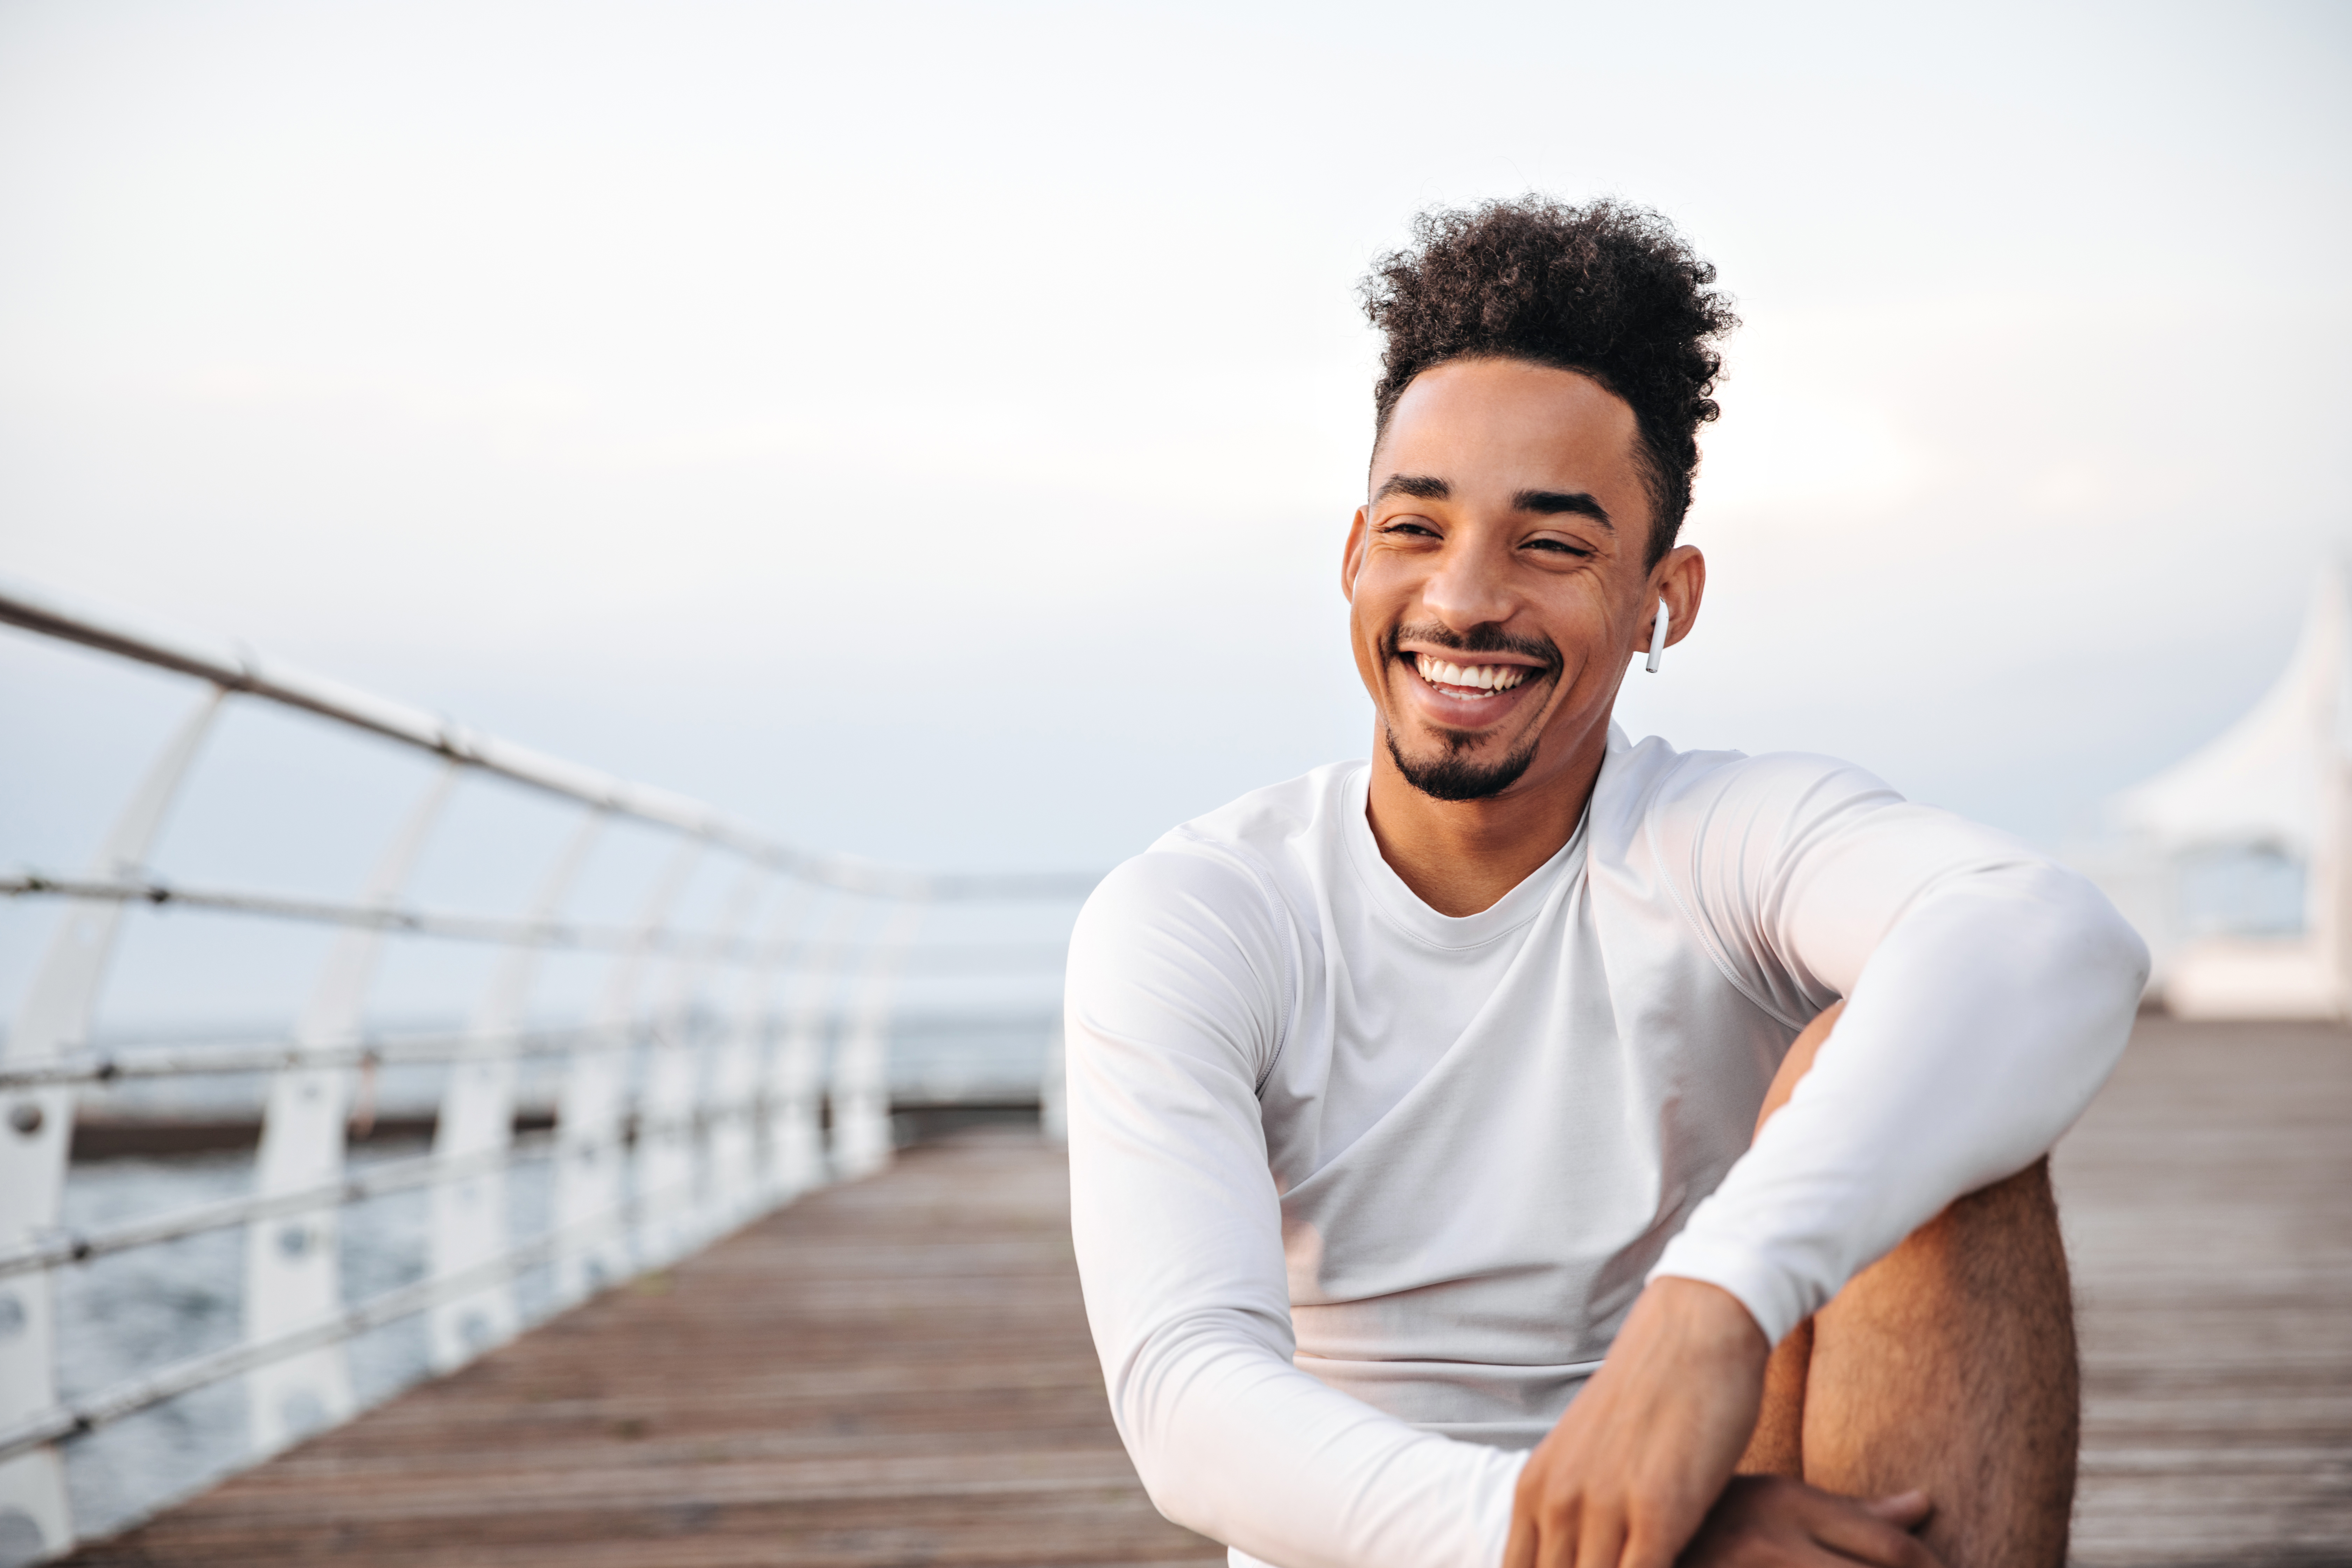 cheerful-curly-dark-skinned-man-white-long-sleeved-t-shirt-smiles-sincerely-rests-near-sea